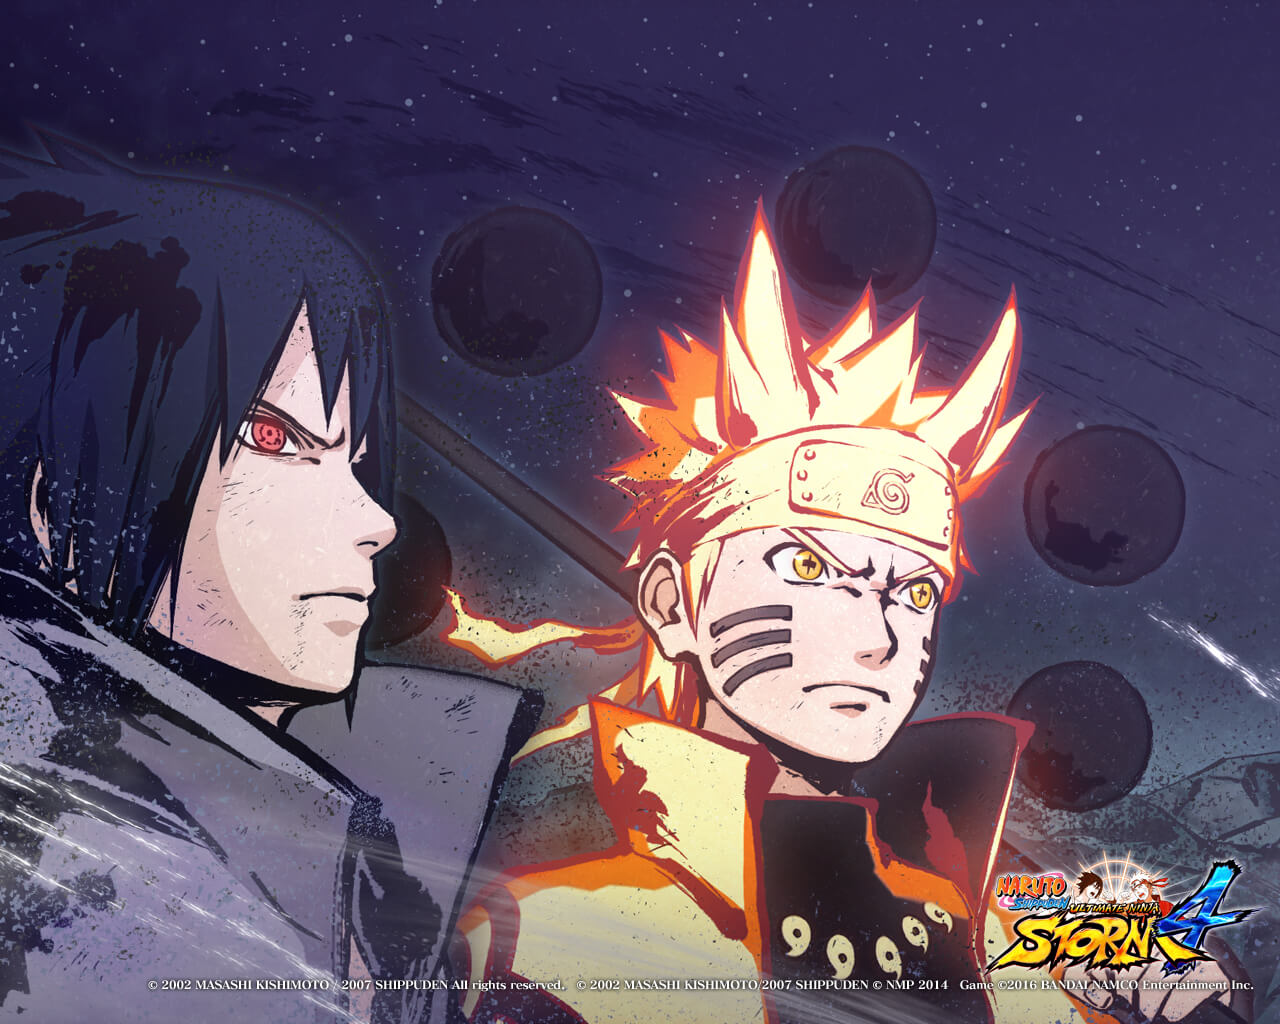 Download tema sasuke windows 7.